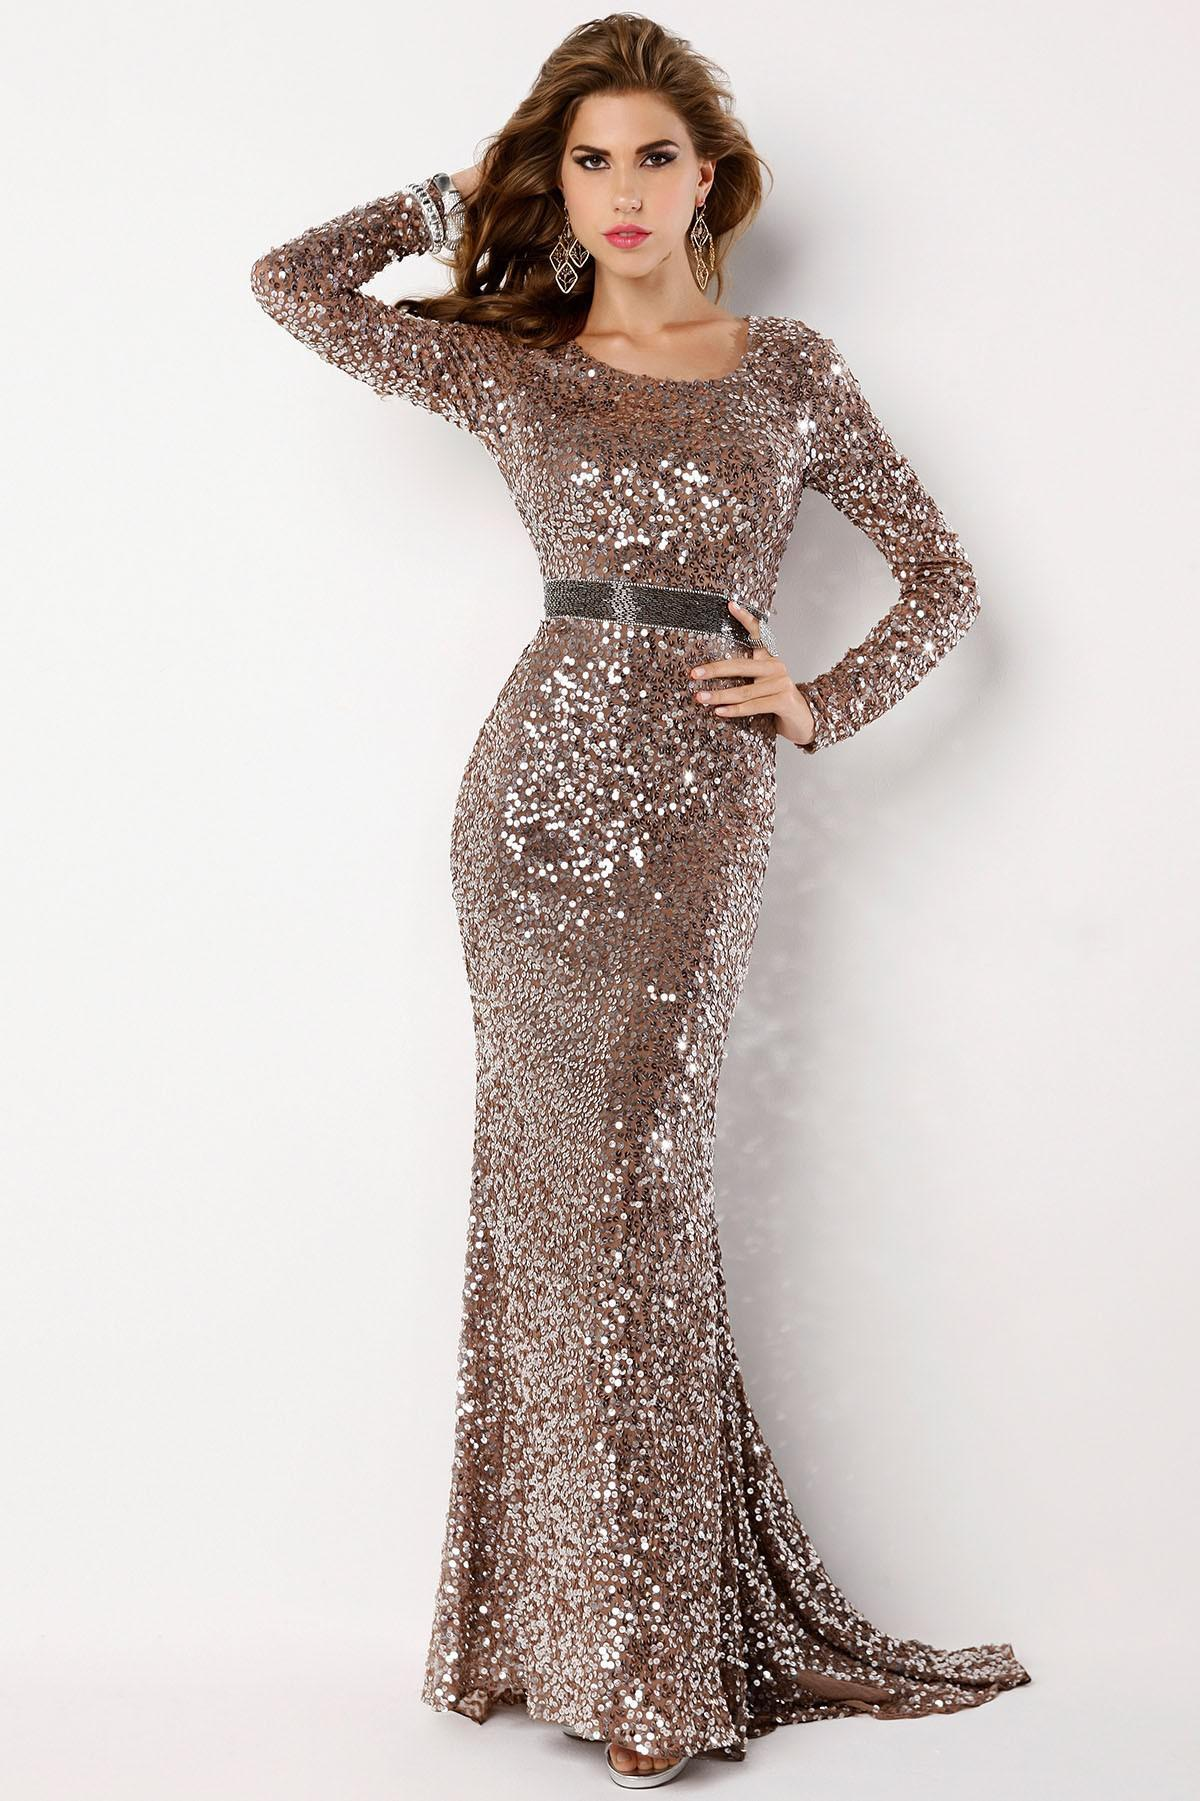 2014 New Sexy Blingbling Rhinestones chocolate Sequins dress Long sleeves Backless evening dresses Sheath Pageant dresses